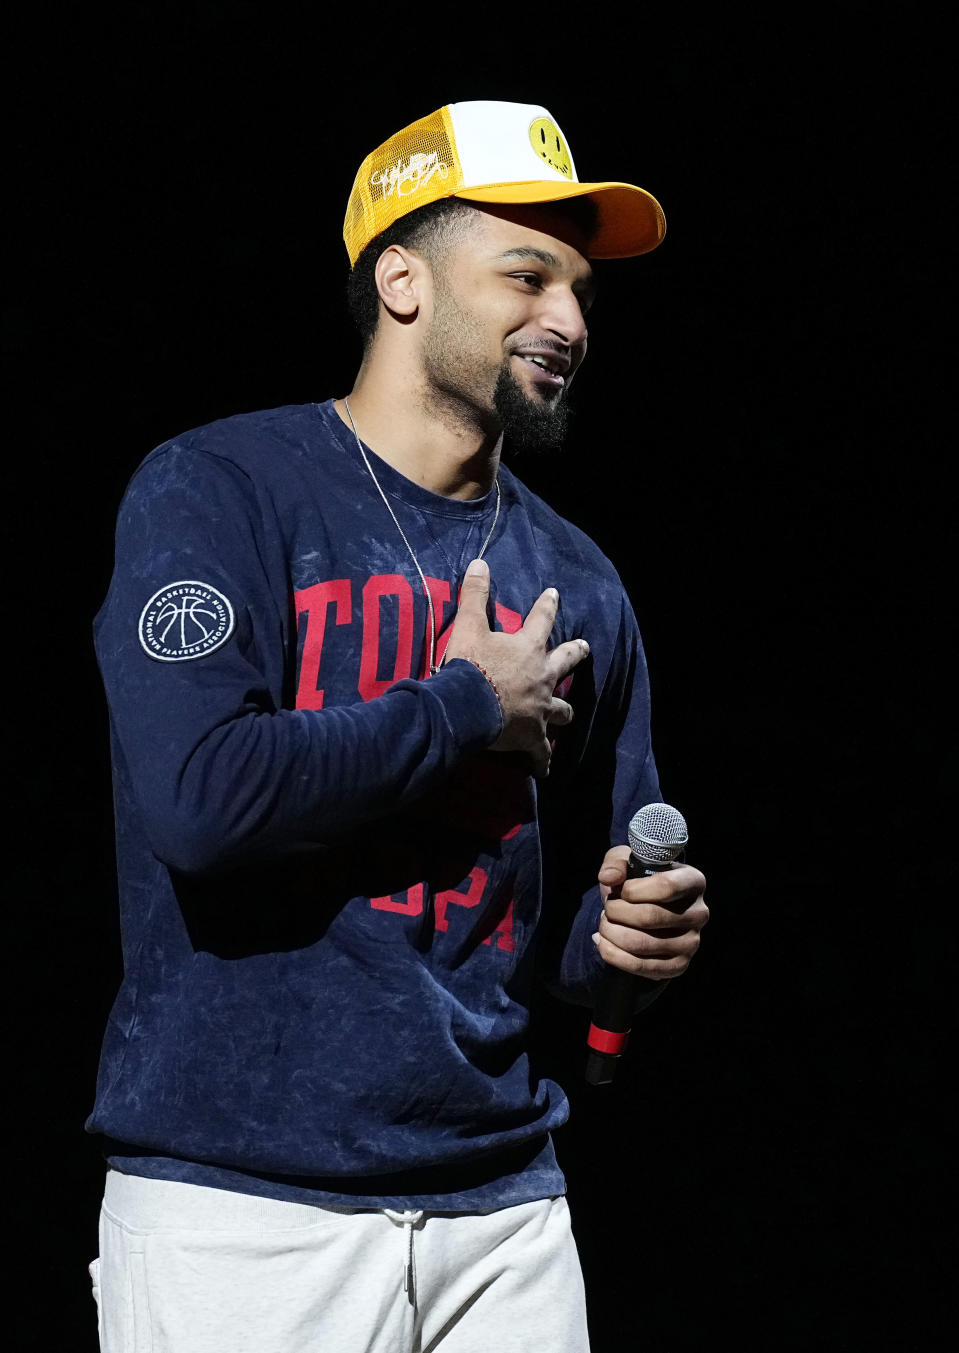 Denver Nuggets' Jamal Murray reacts to cheering fans before Game 1 against the Portland Trail Blazers in a first-round NBA basketball playoff series Saturday, May 22, 2021, in Denver. (AP Photo/Jack Dempsey)